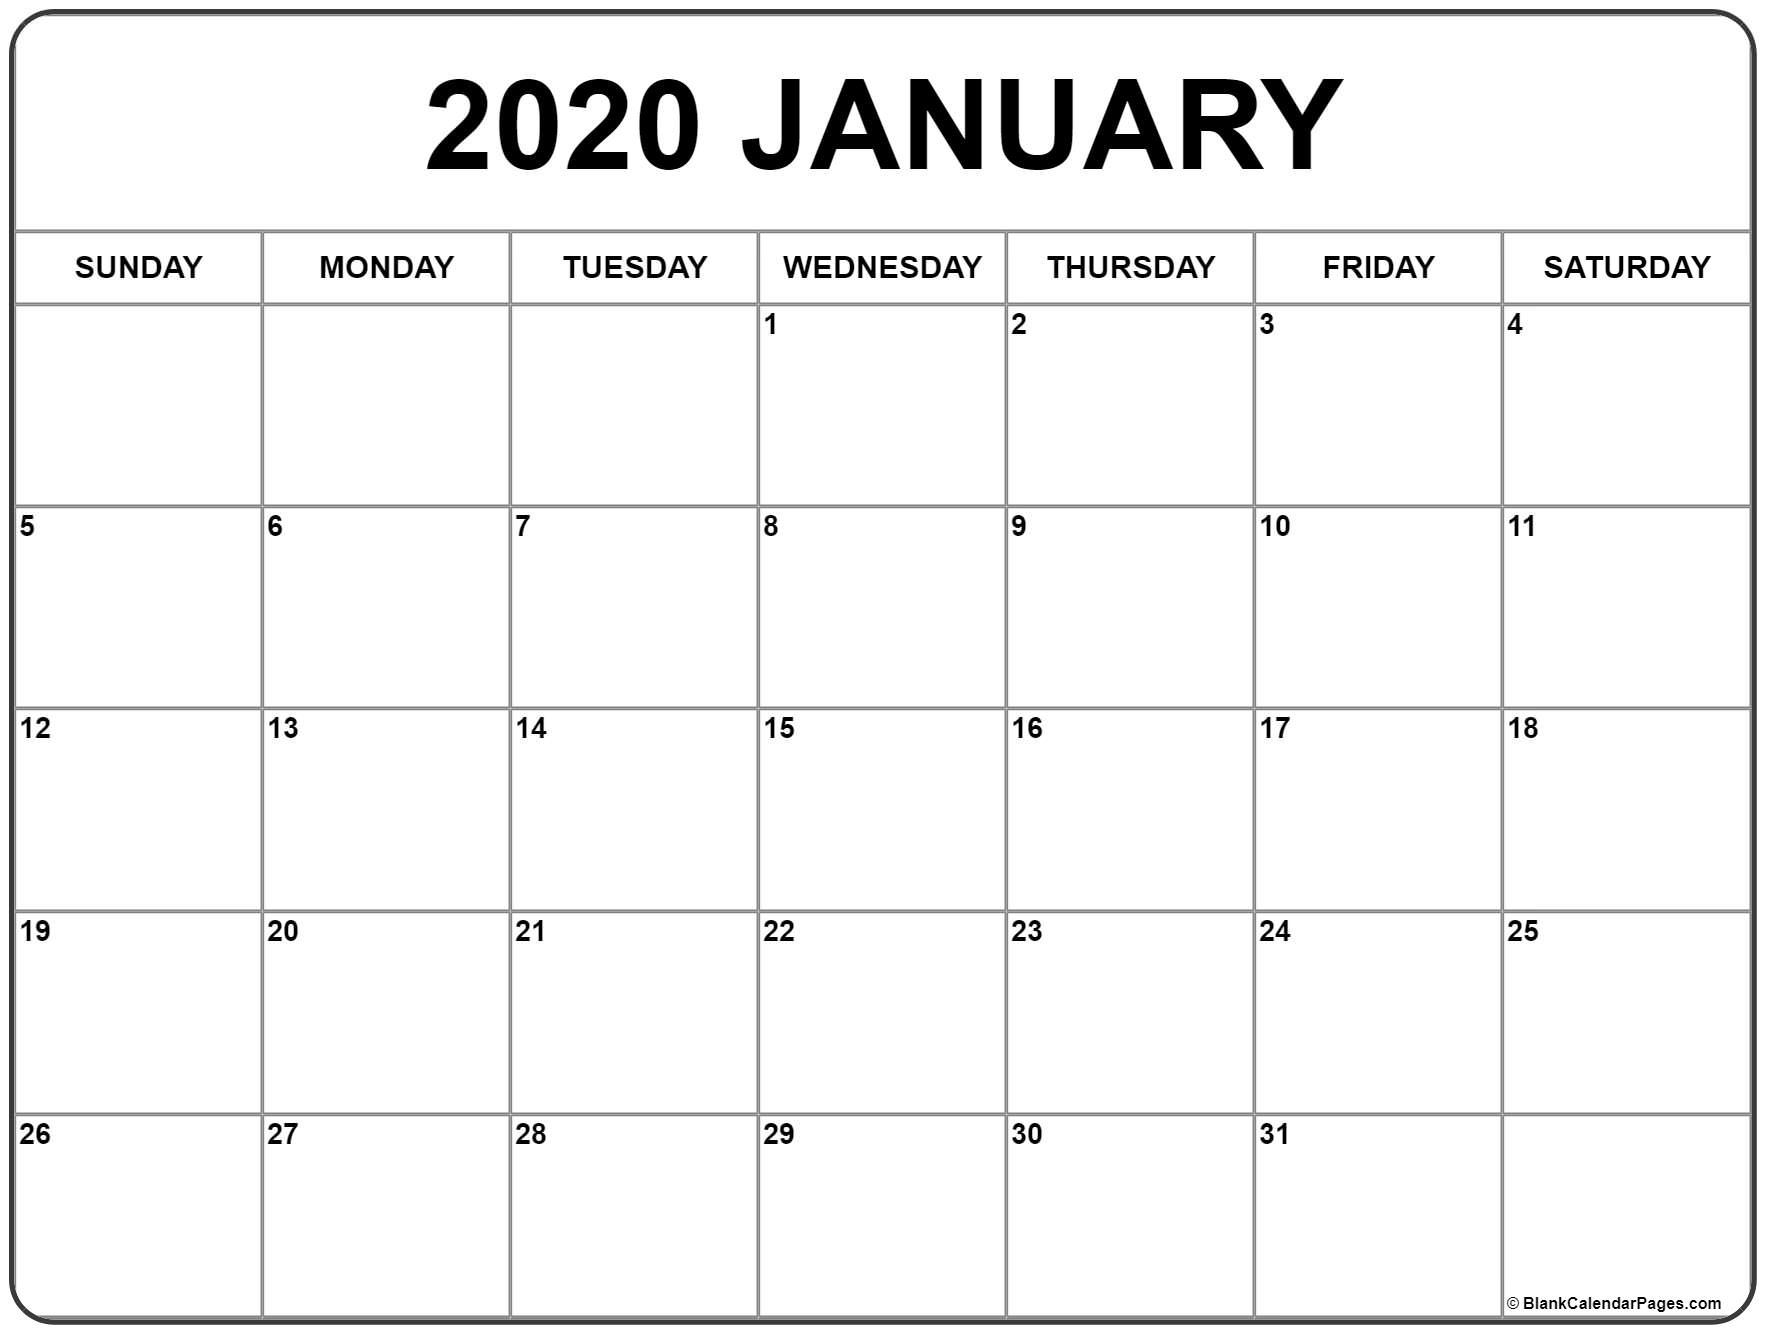 January 2020 Calendar | Free Printable Monthly Calendars regarding Online Free Printable Calendar 2020